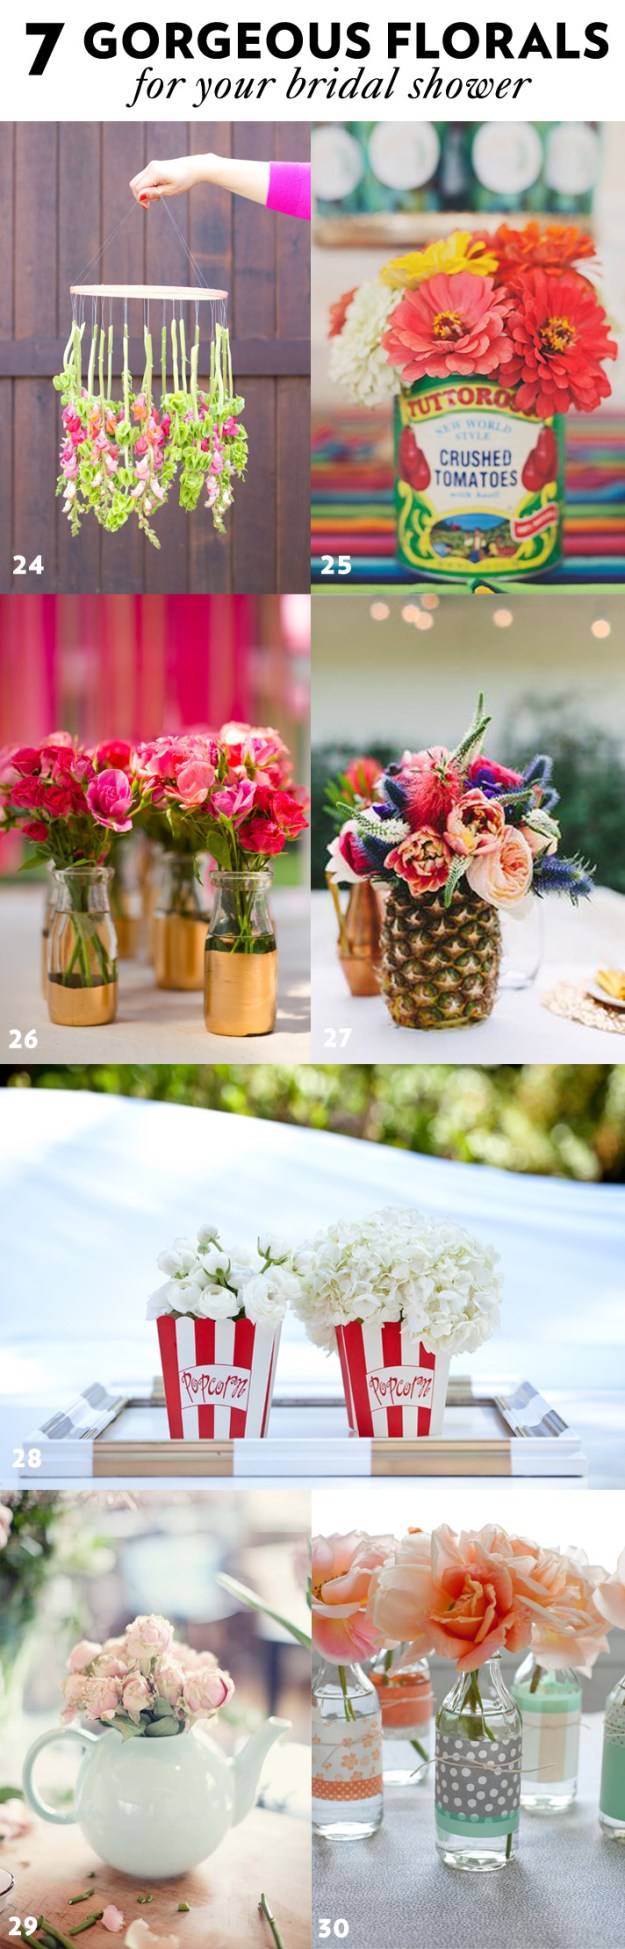 7 Gorgeous Floral Styling Ideas for your Bridal Shower + 43 More Simple and Stylish DIY Bridal Shower & Bachelorette Decoration Ideas from Ultimate Bridesmaid